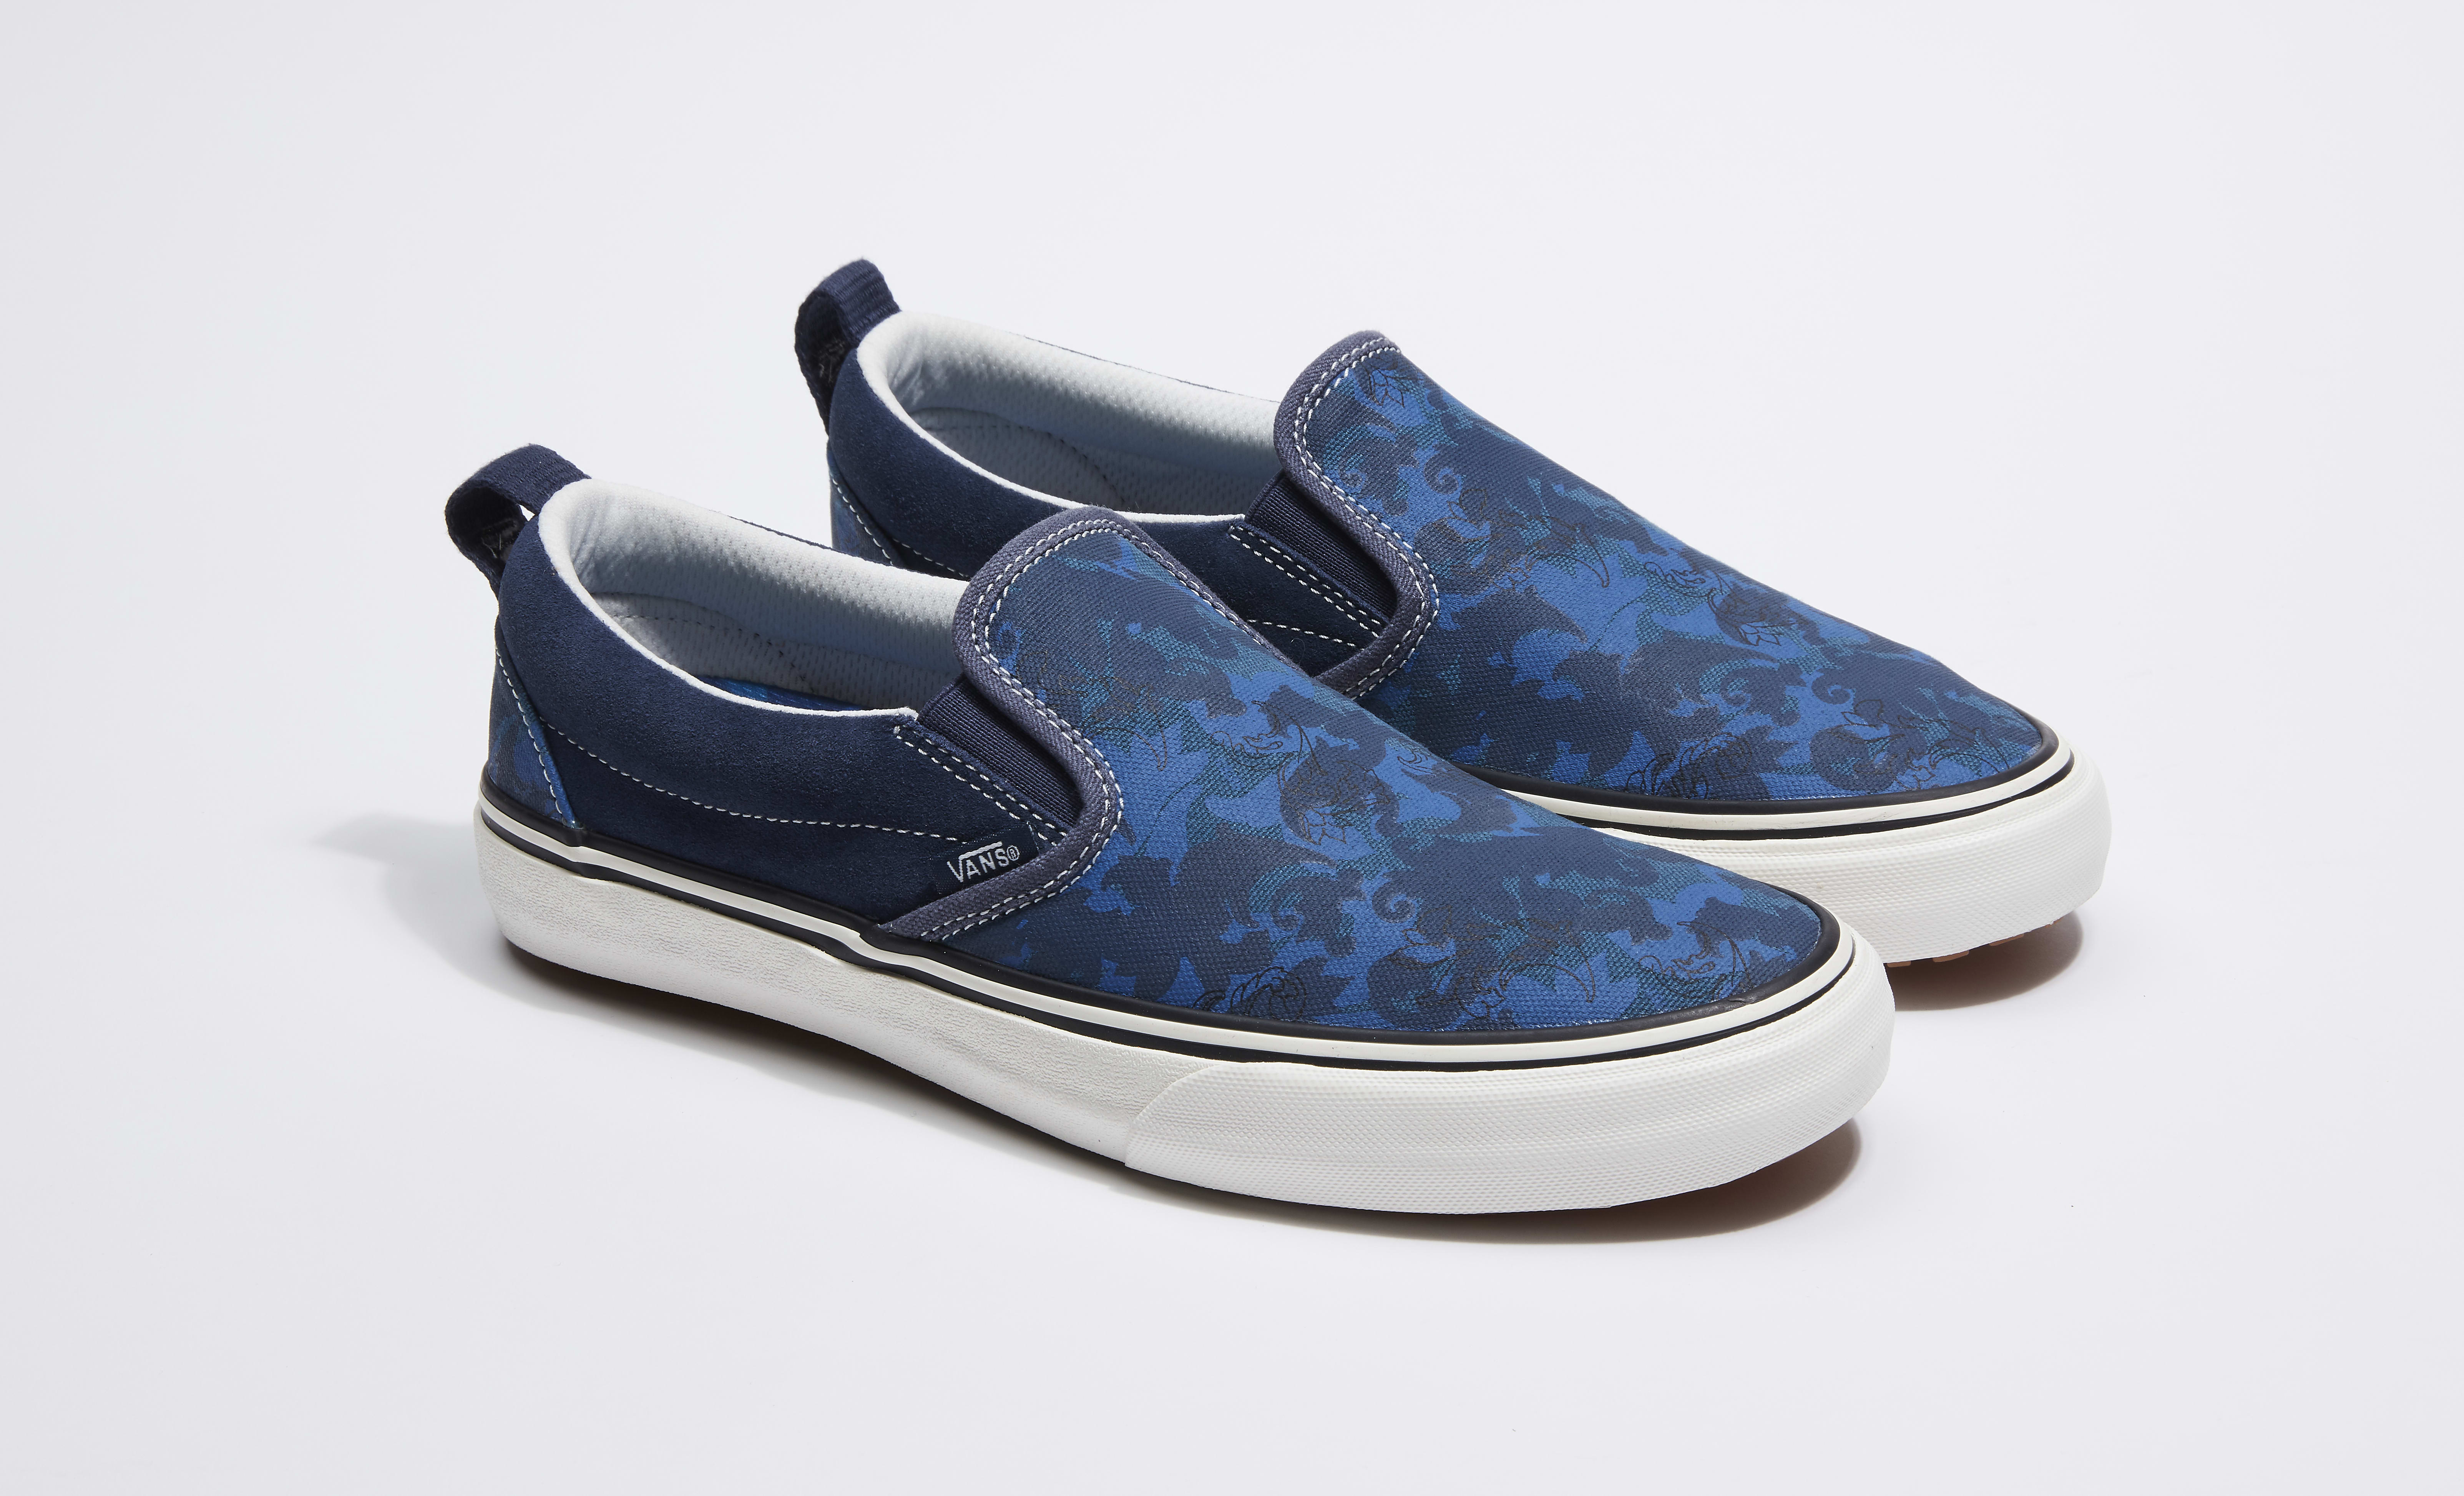 BJ Betts x Vans Slip-On 'Made for the Makers' Collab